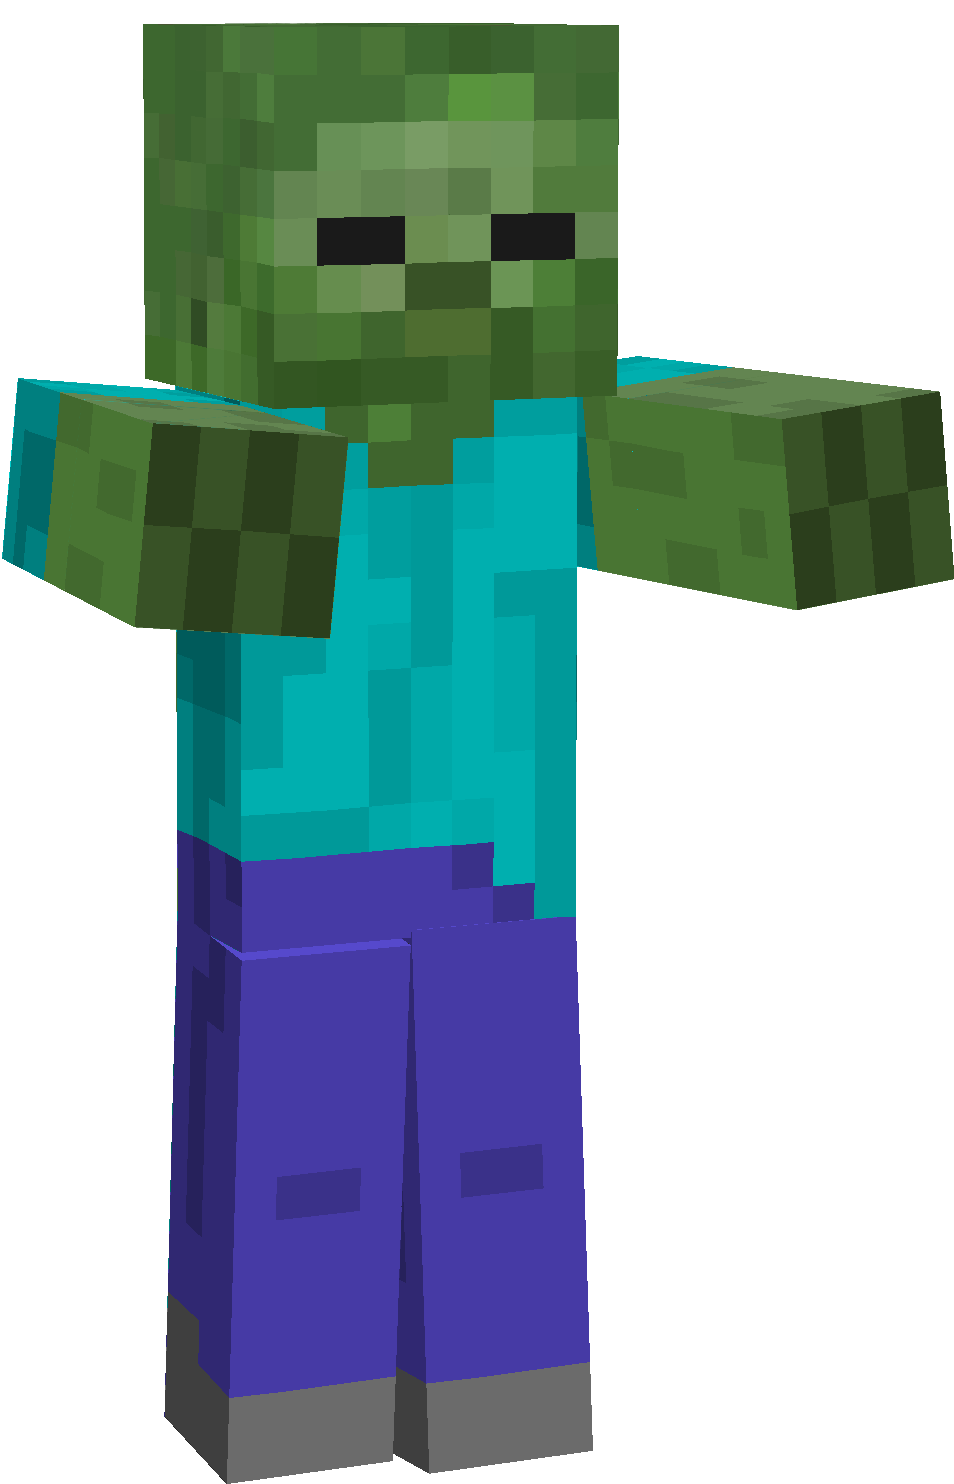 Minecraft steve head png. List of enemies and